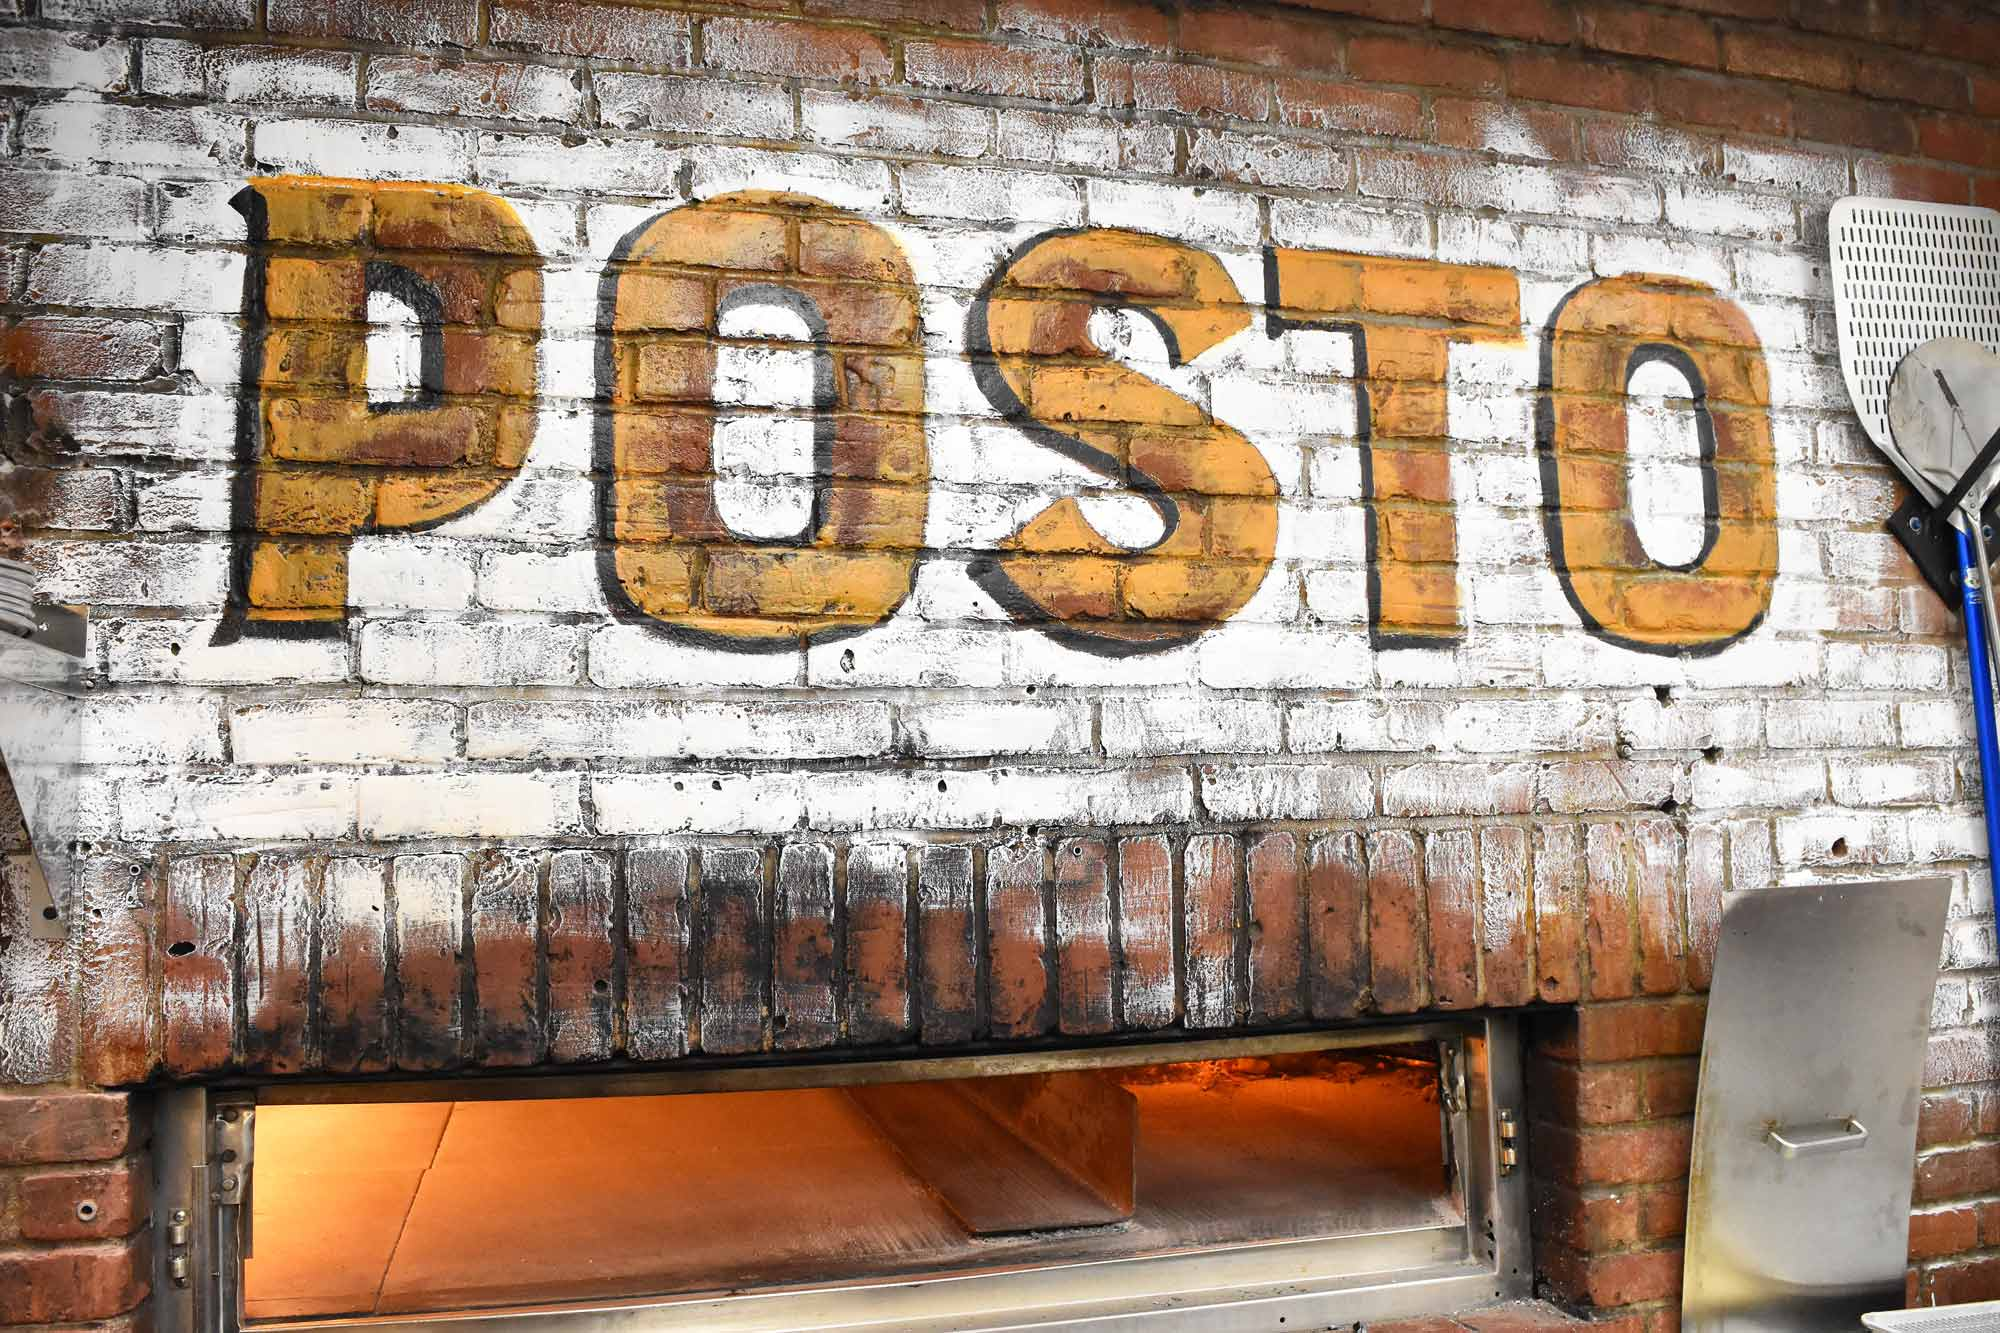 This is a photo of the Posto Brick Oven.